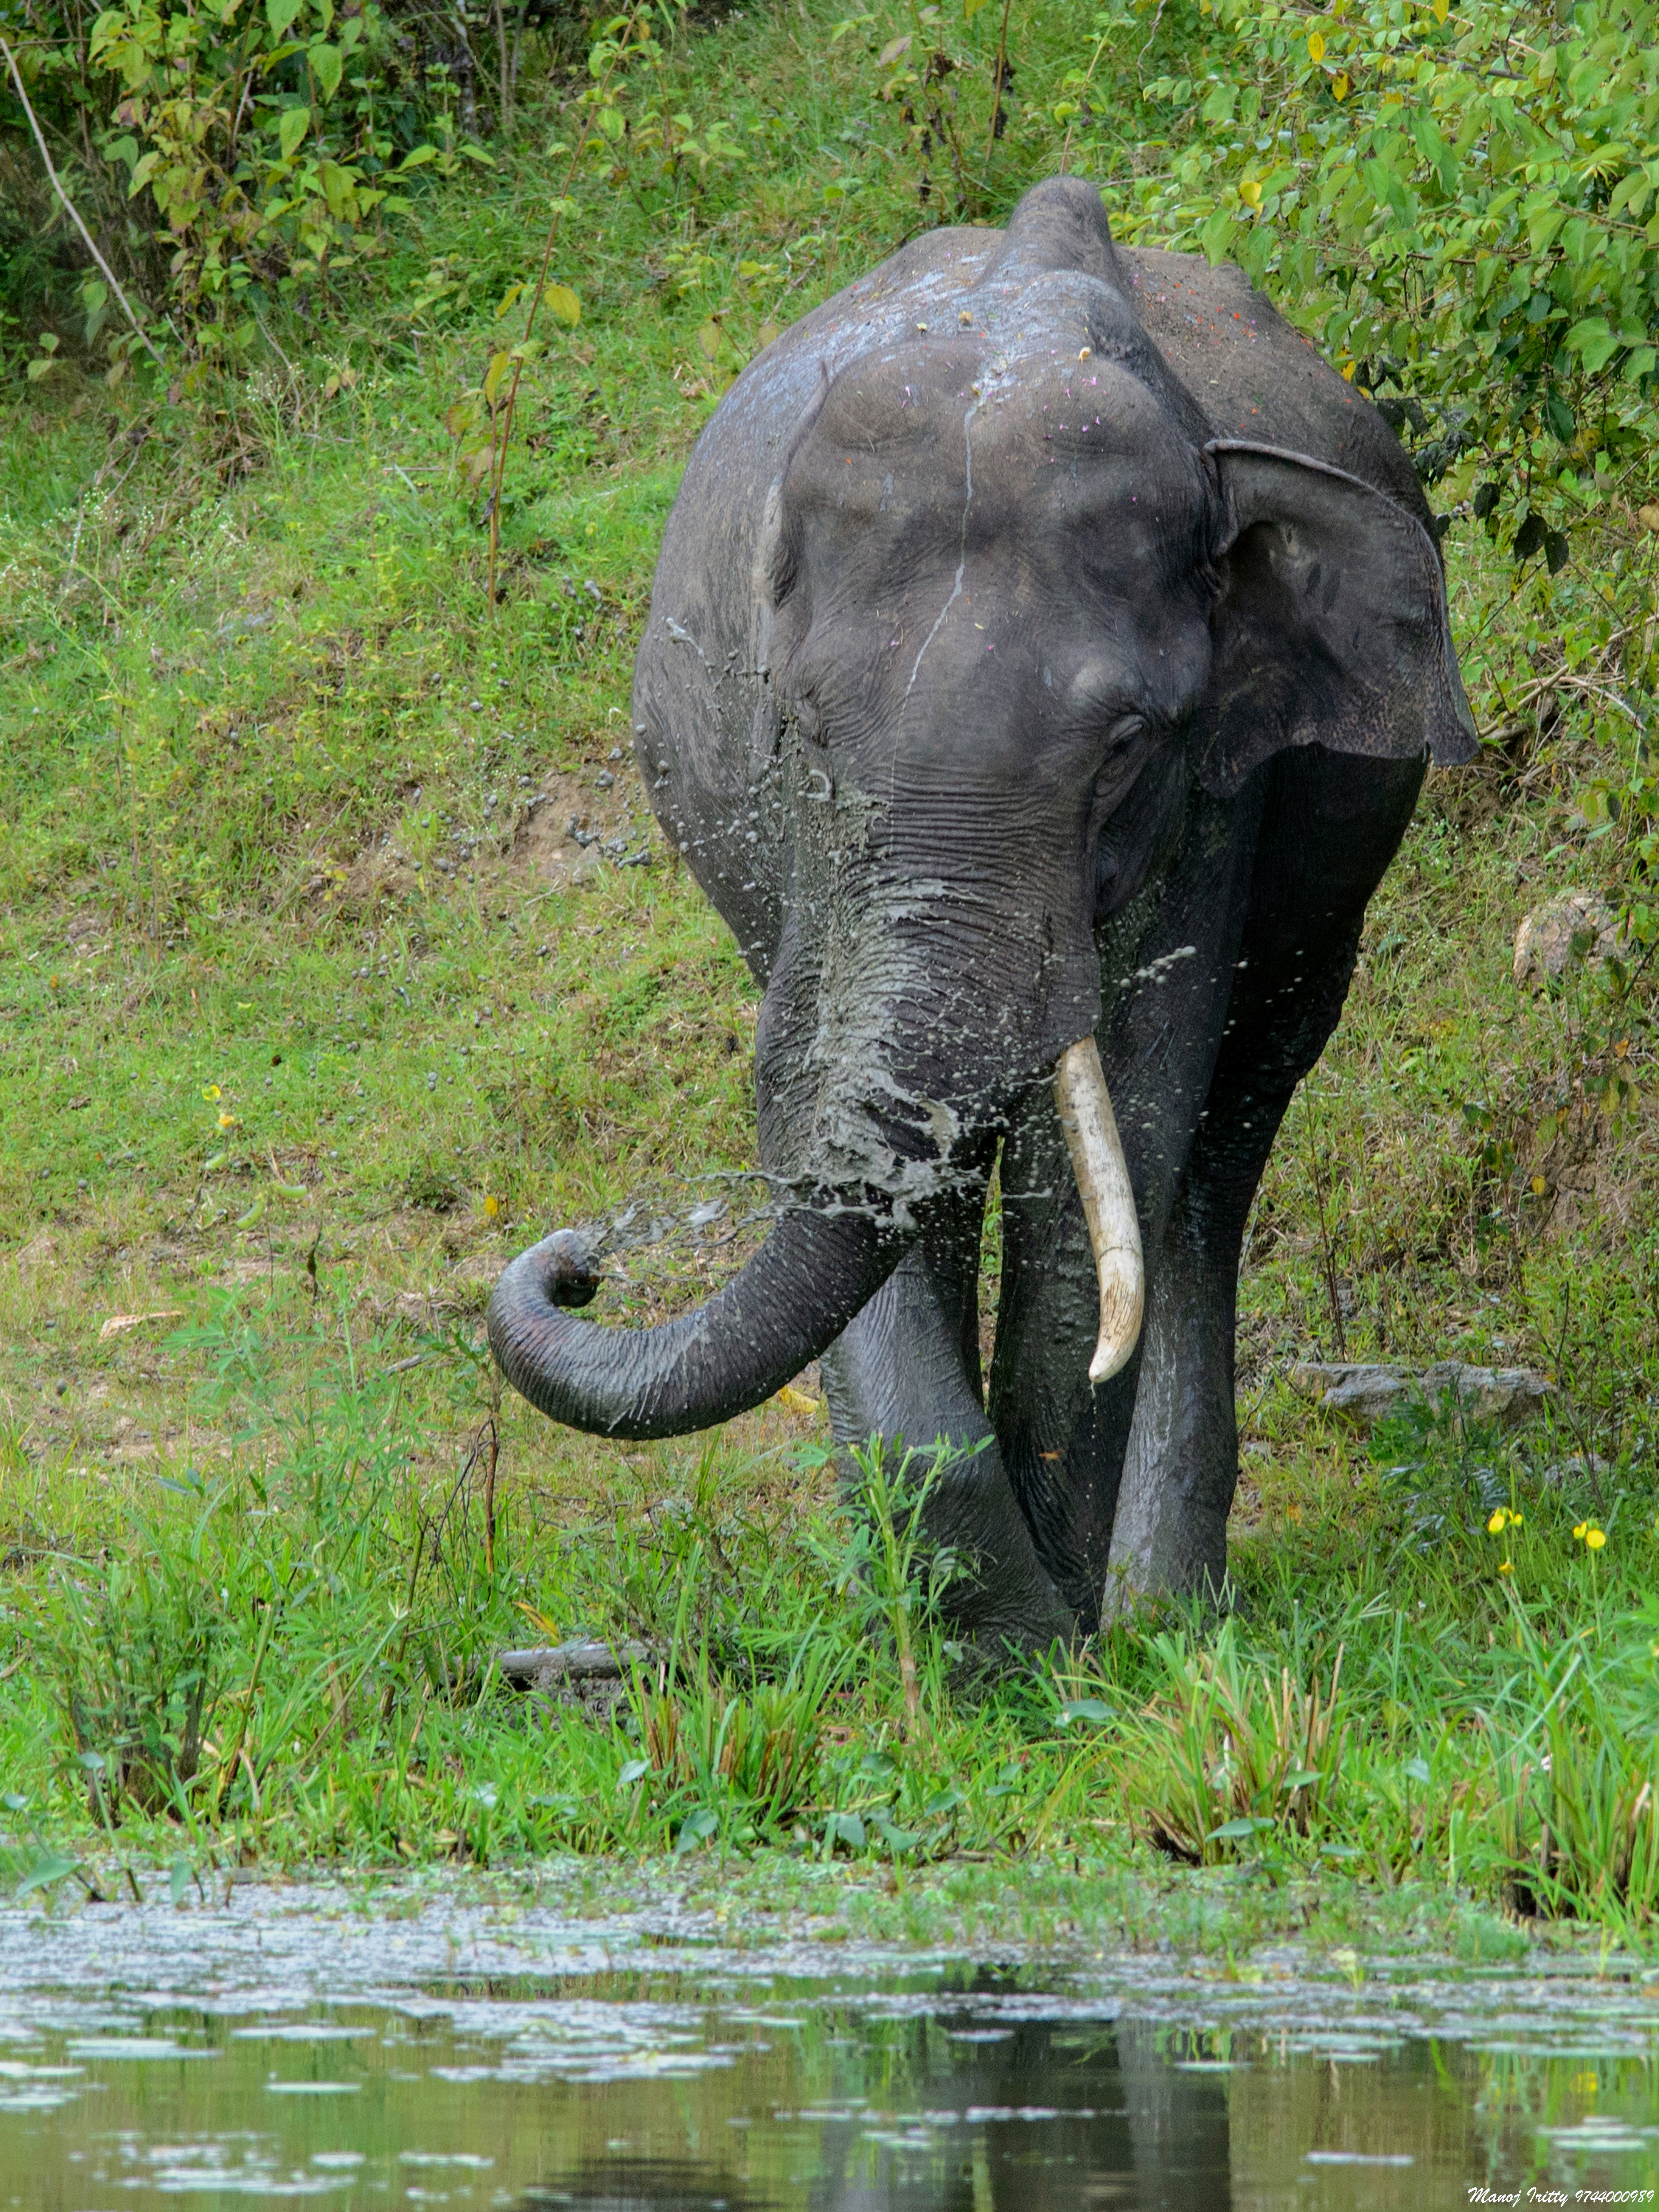 The Asian or Asiatic elephant is the only living species of the genus Elephas and is distributed in Southeast Asia from India in the west to Borneo in the east. Photo taken of Borneo elephant on August 25, 2015.